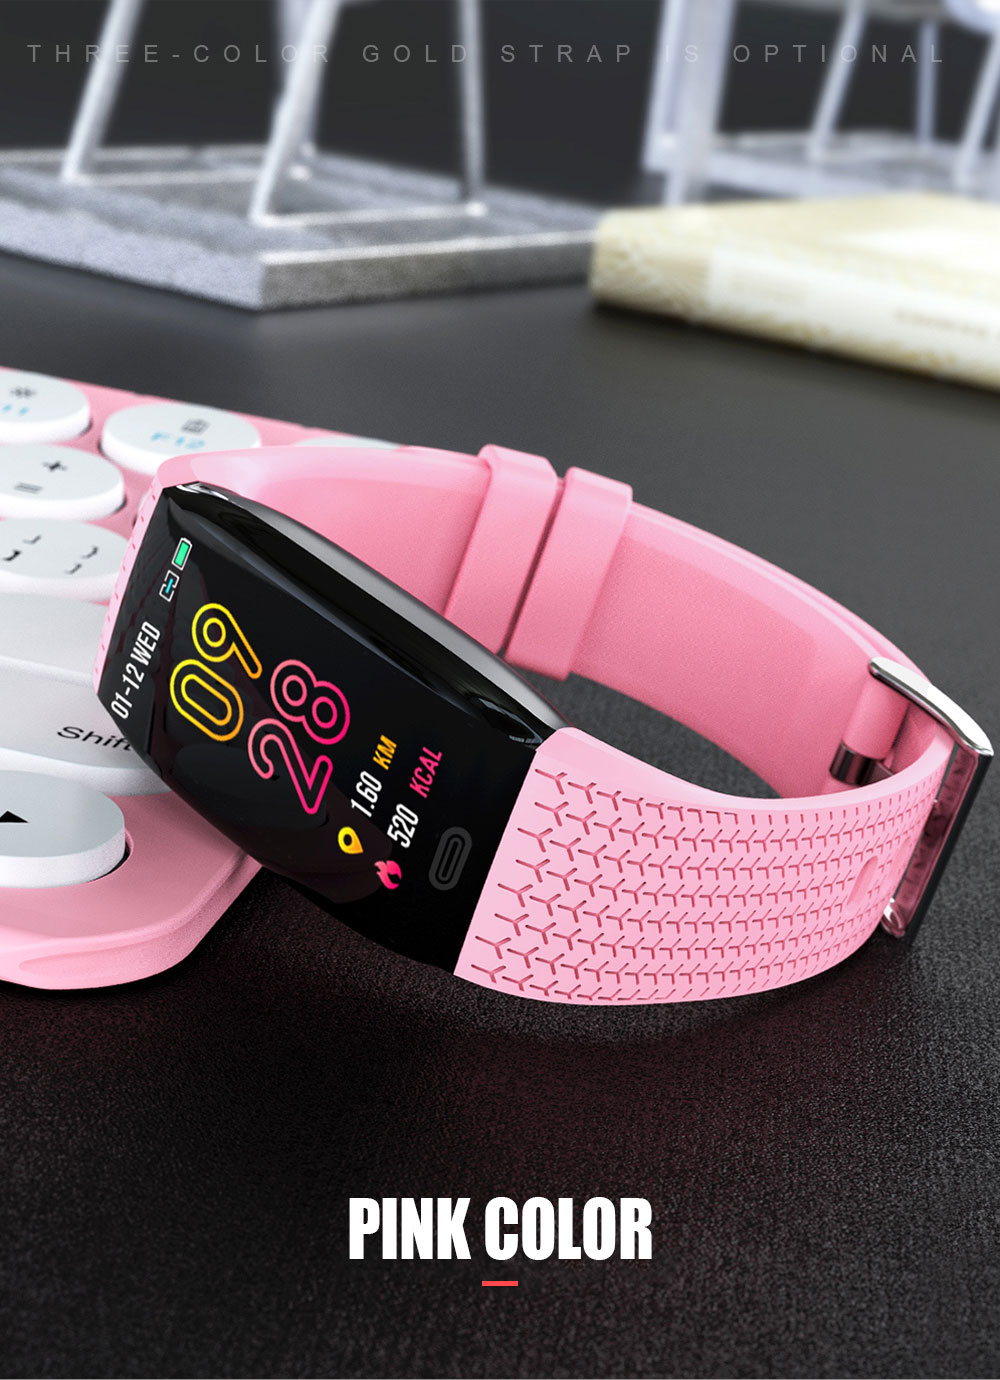 Bakeey S2 1.14' Big Screen Wristband Heart Rate Monitor Fitness Tracker USB Charger Smart Watch